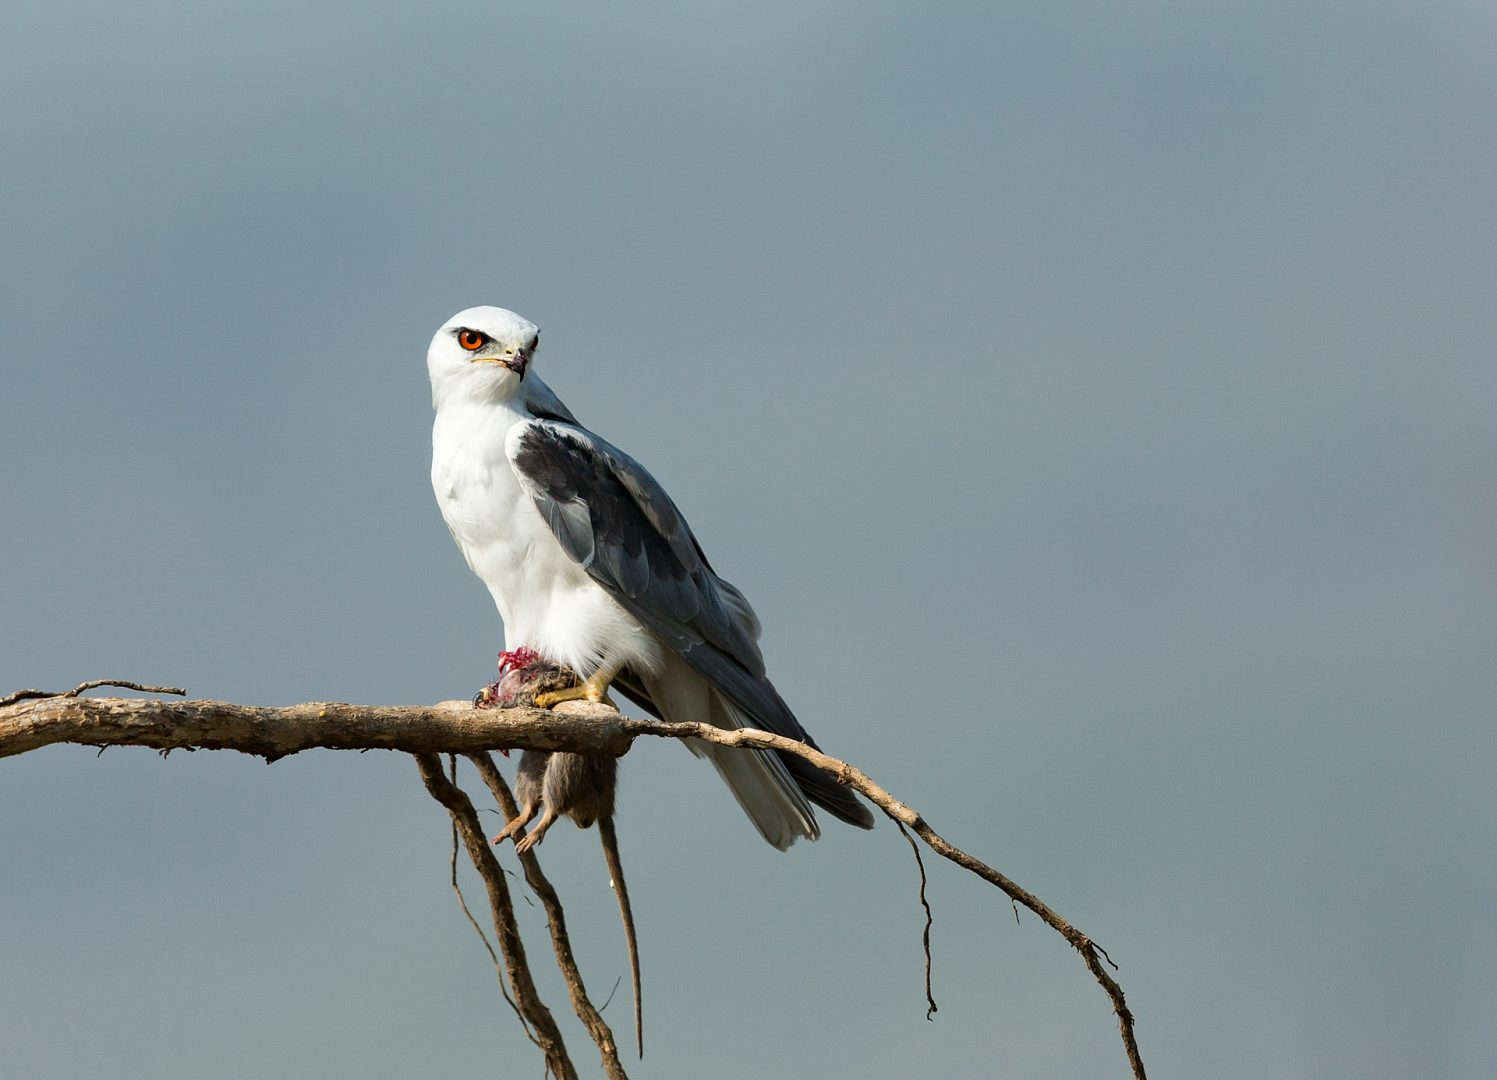 Black-shouldered Kite, Corbett Tiger Reserve, India.